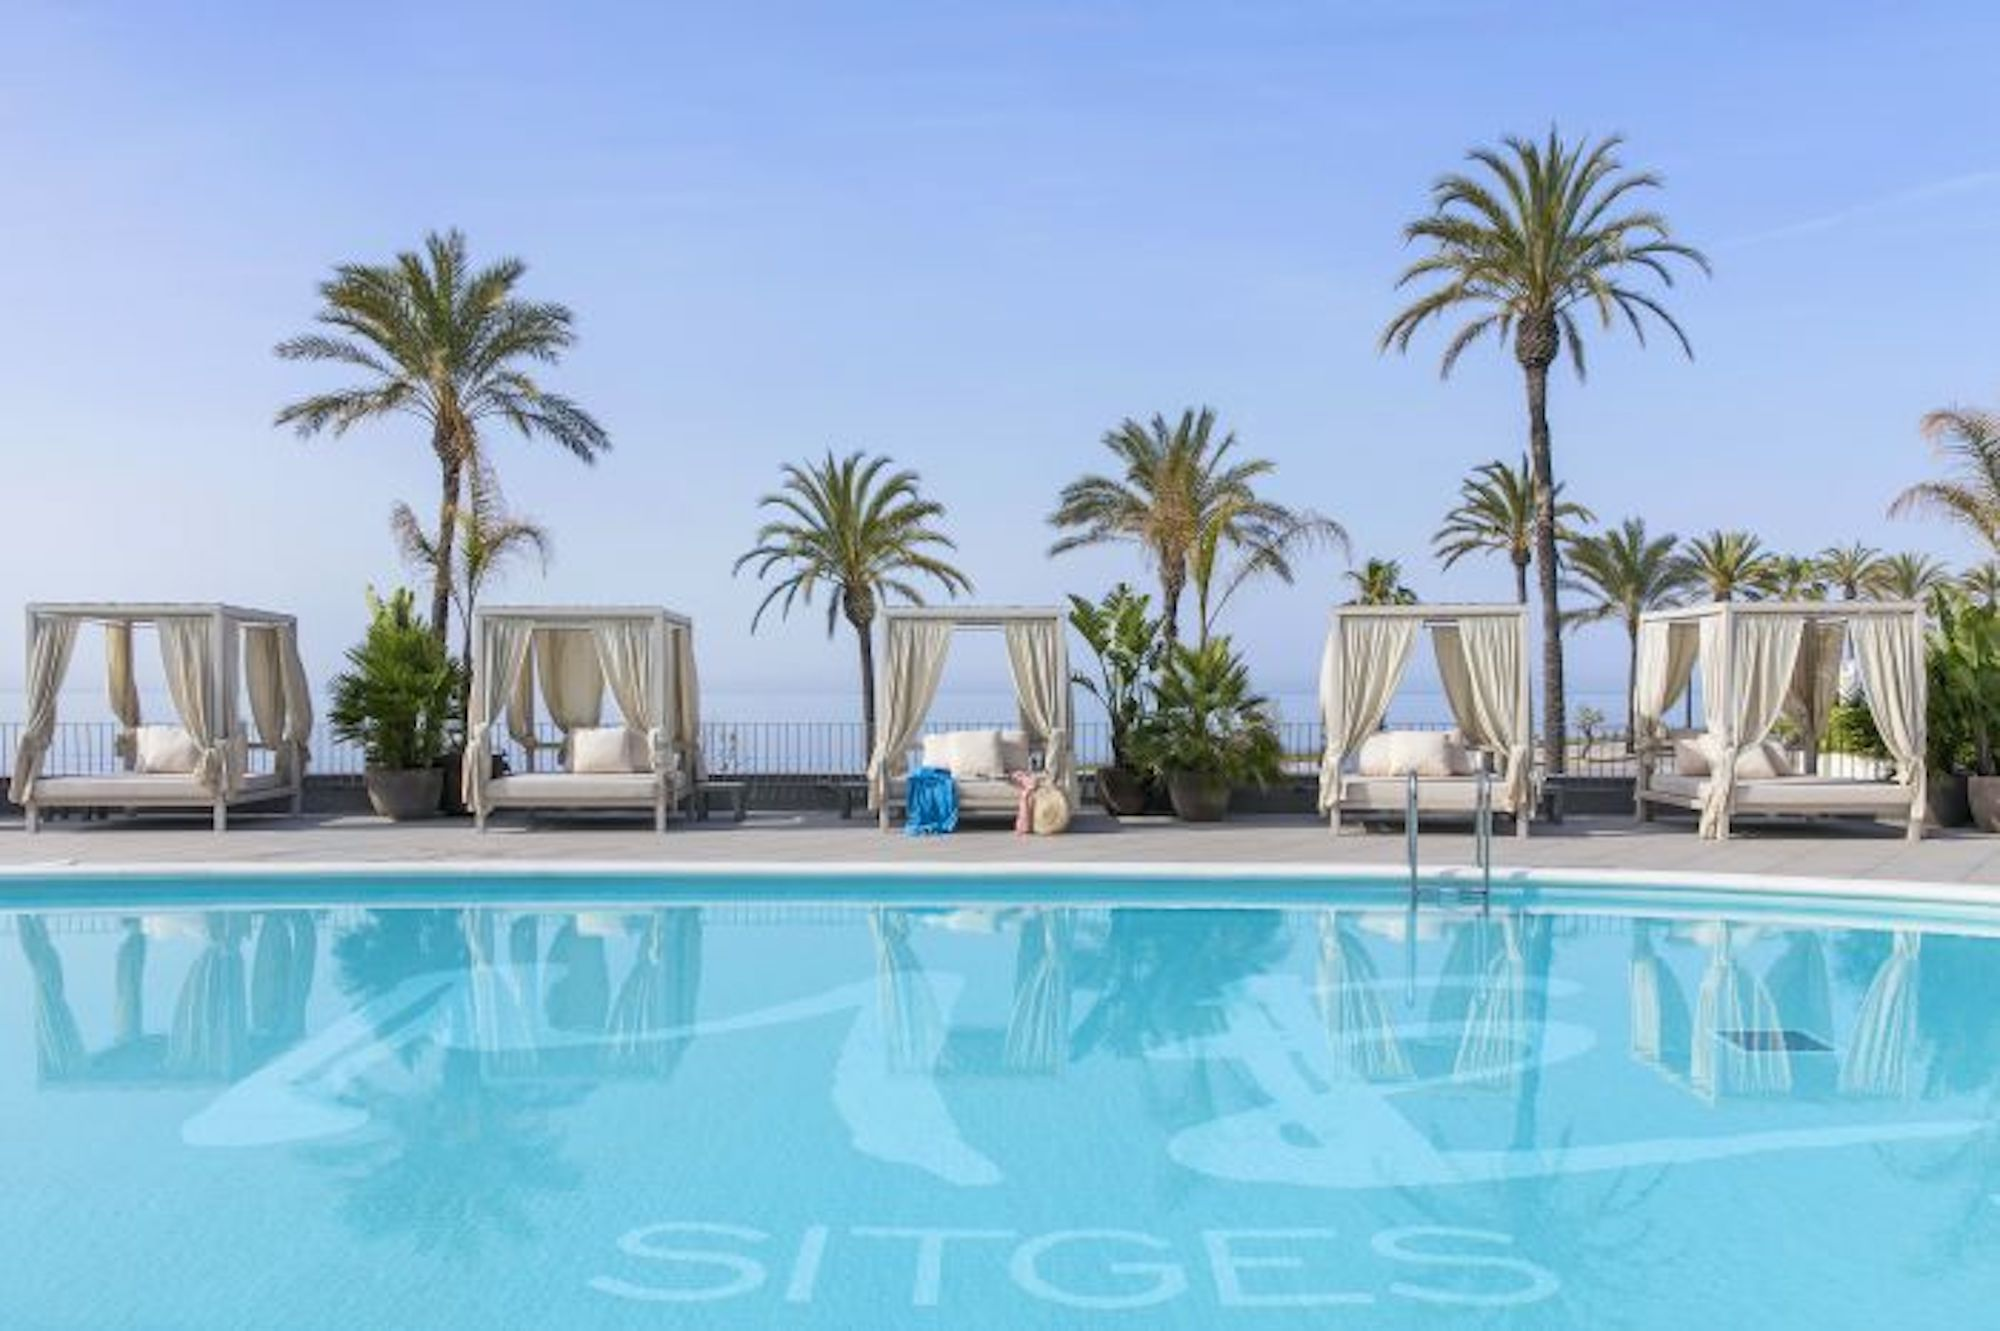 Sitges pool Bali beds